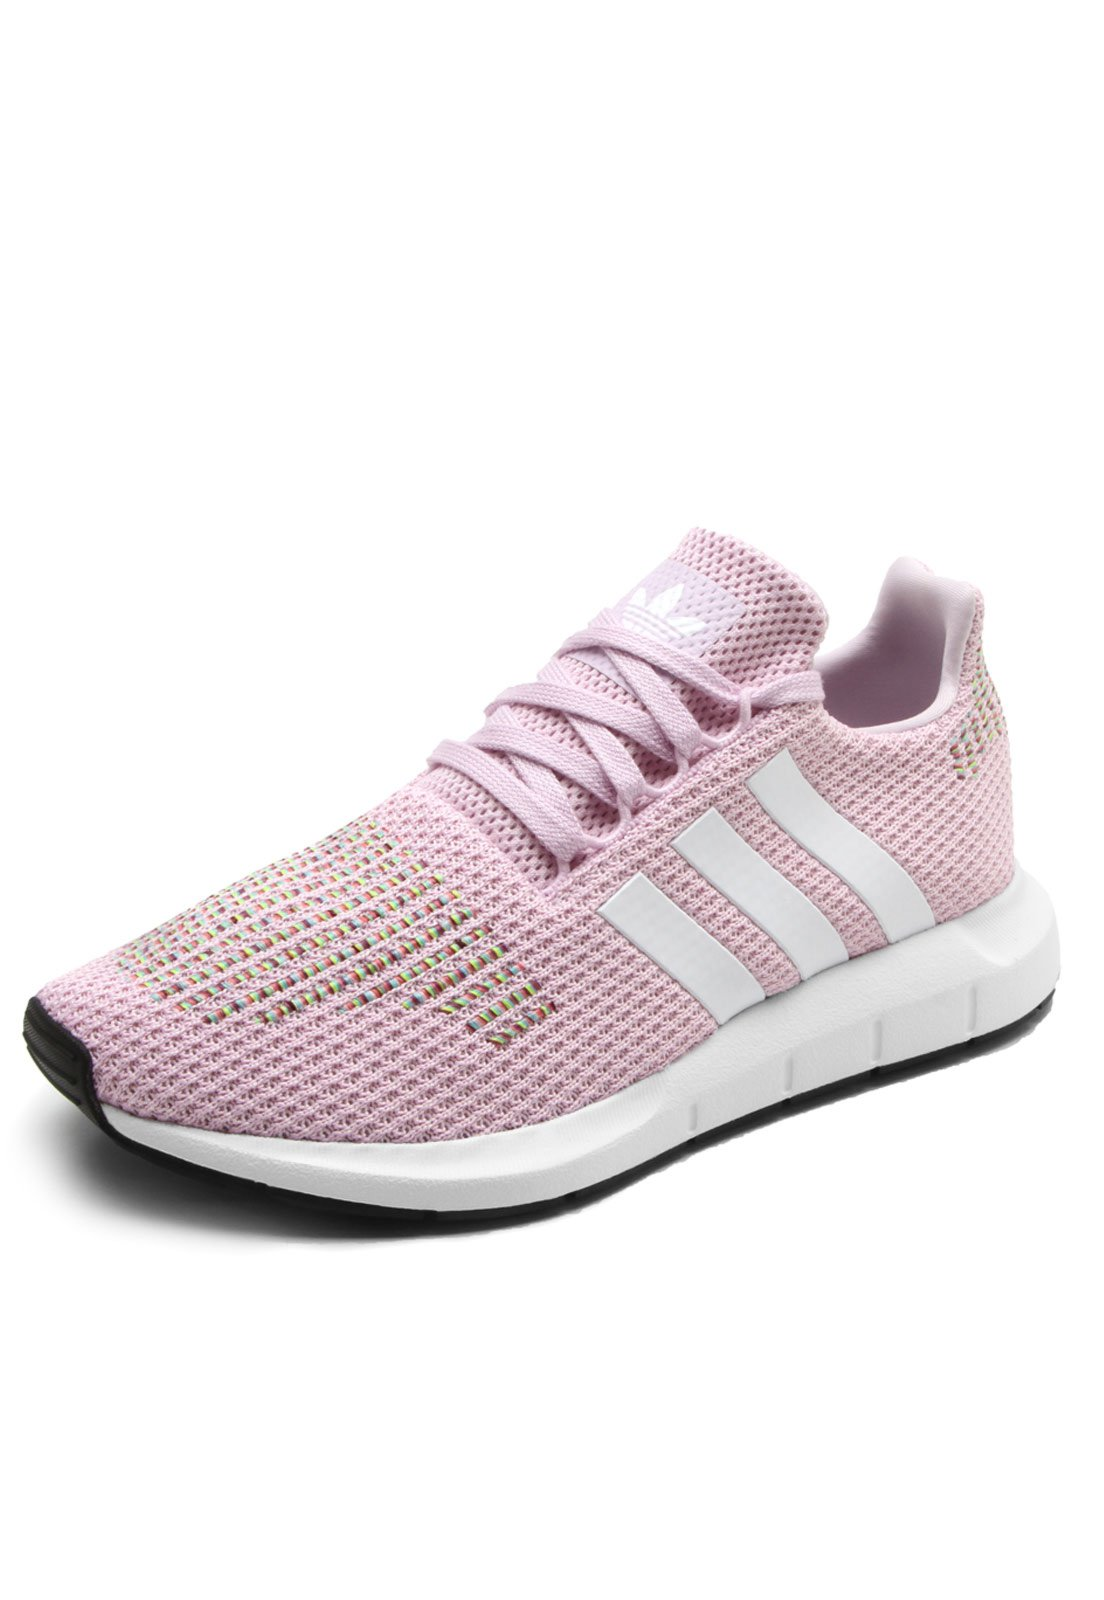 release info on best authentic elegant shoes Tênis adidas Originals Swift Run Rosa